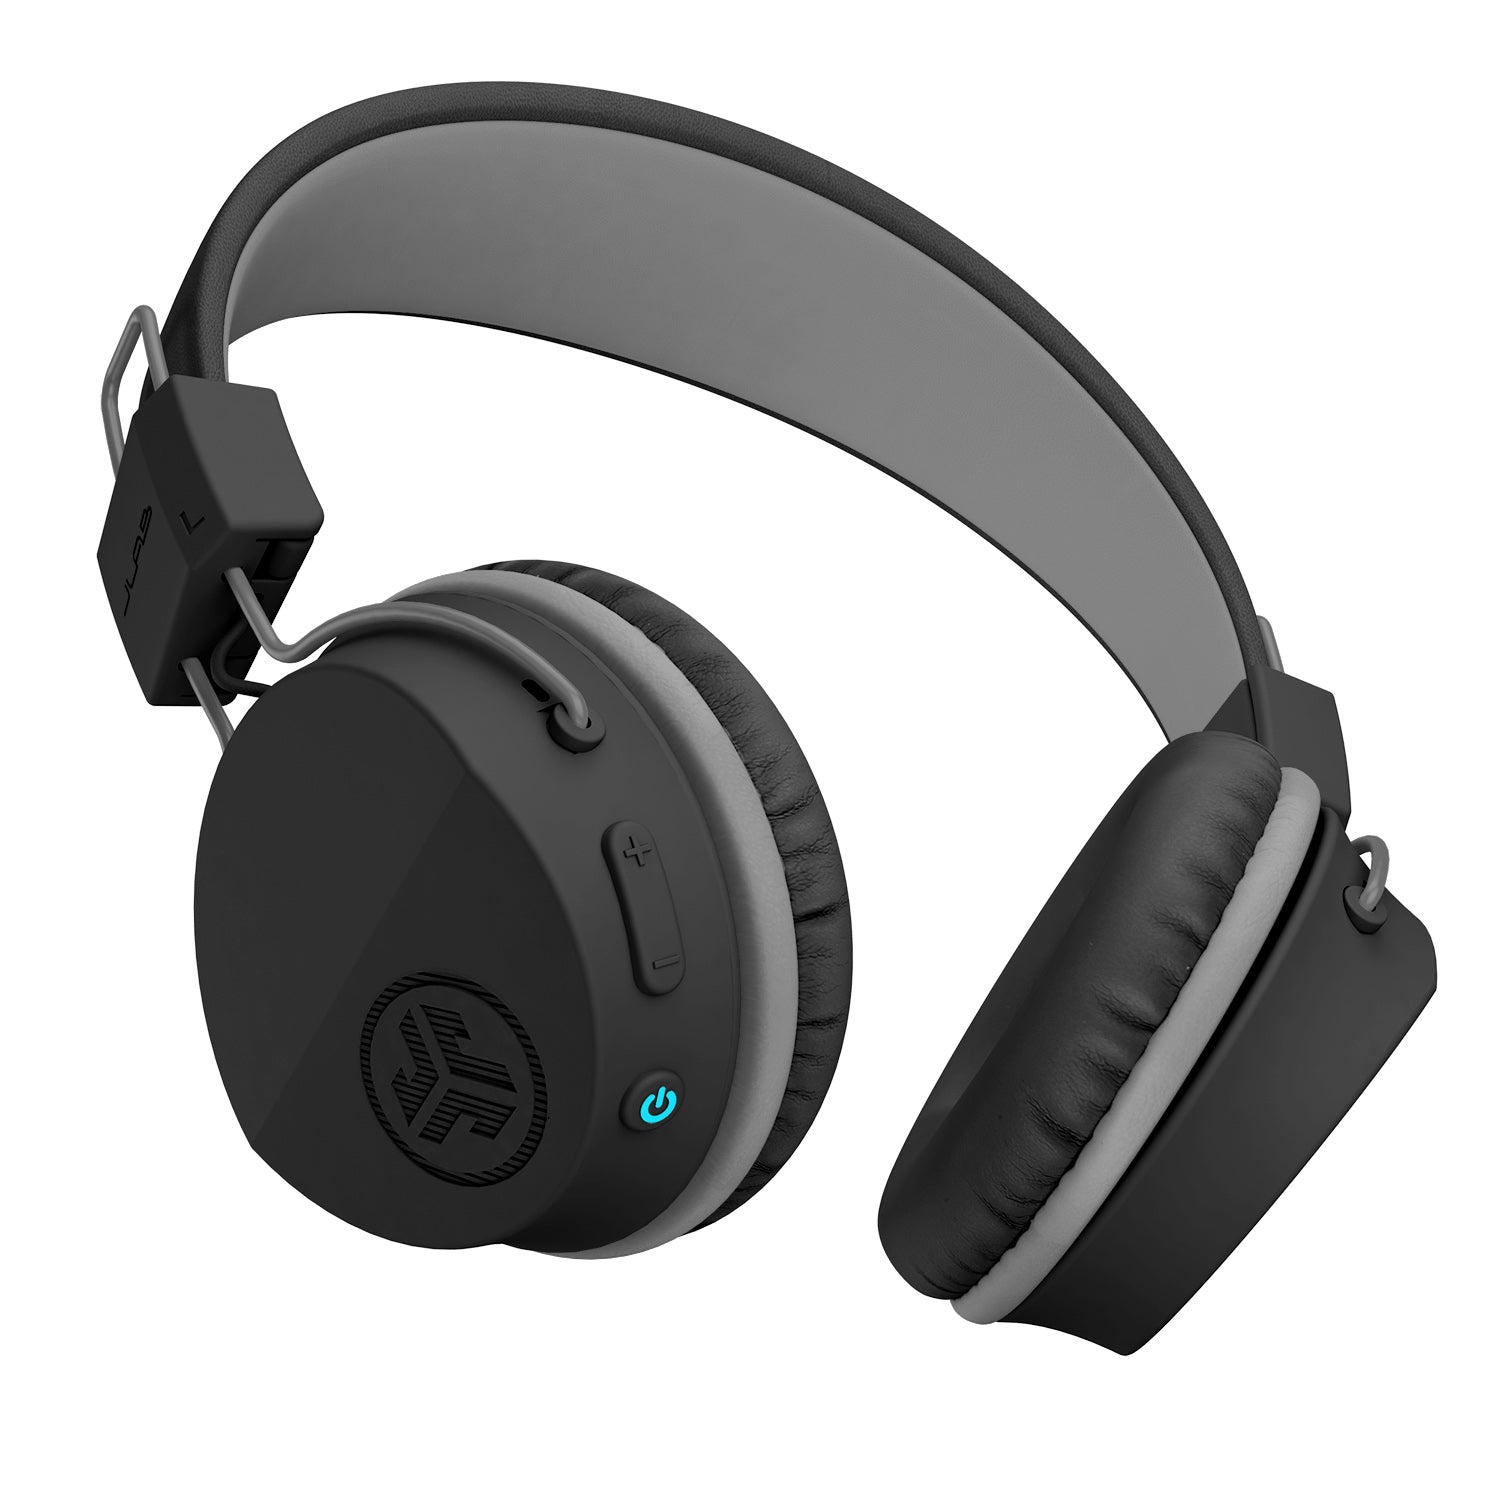 Neon Bluetooth Wireless On Ear Headphones Jlab Audio Headset With Mic Free Download Wiring Diagrams Pictures Get